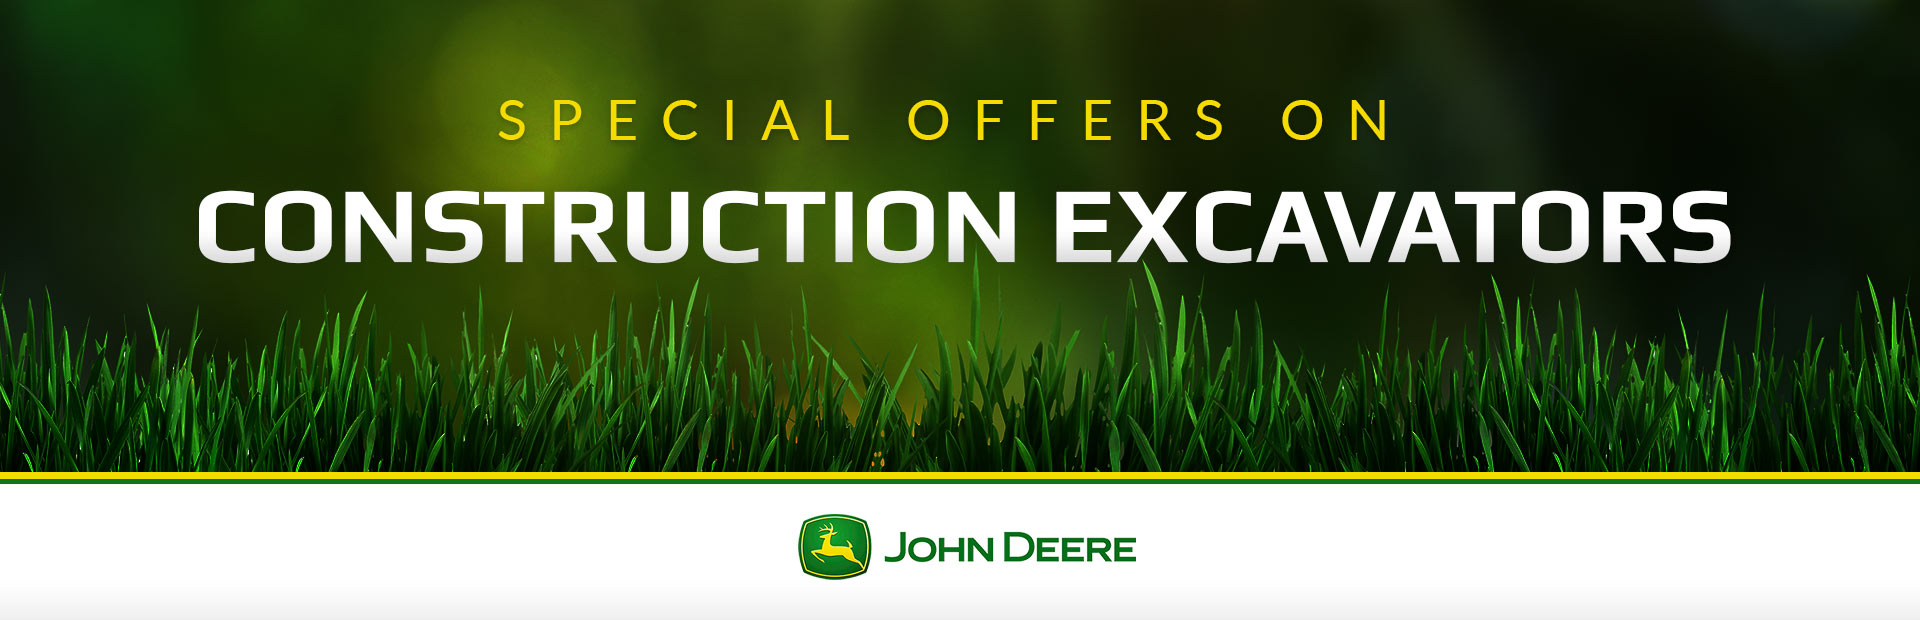 John Deere: Construction Excavators